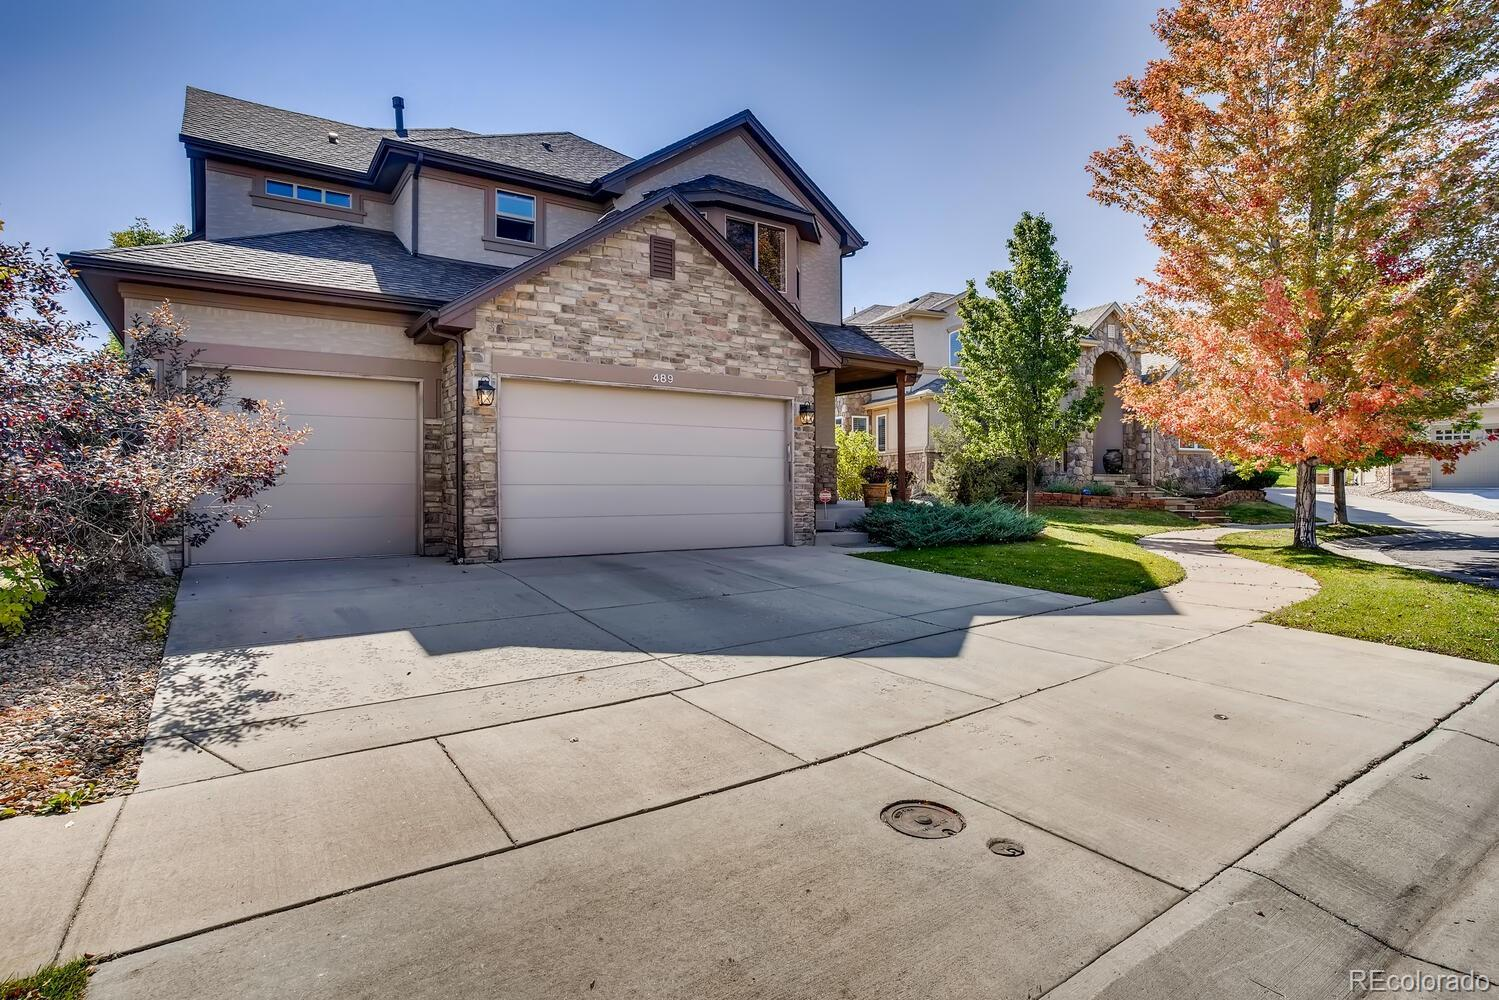 489 S Youngfield Circle, Lakewood, CO 80228 - #: 8655670